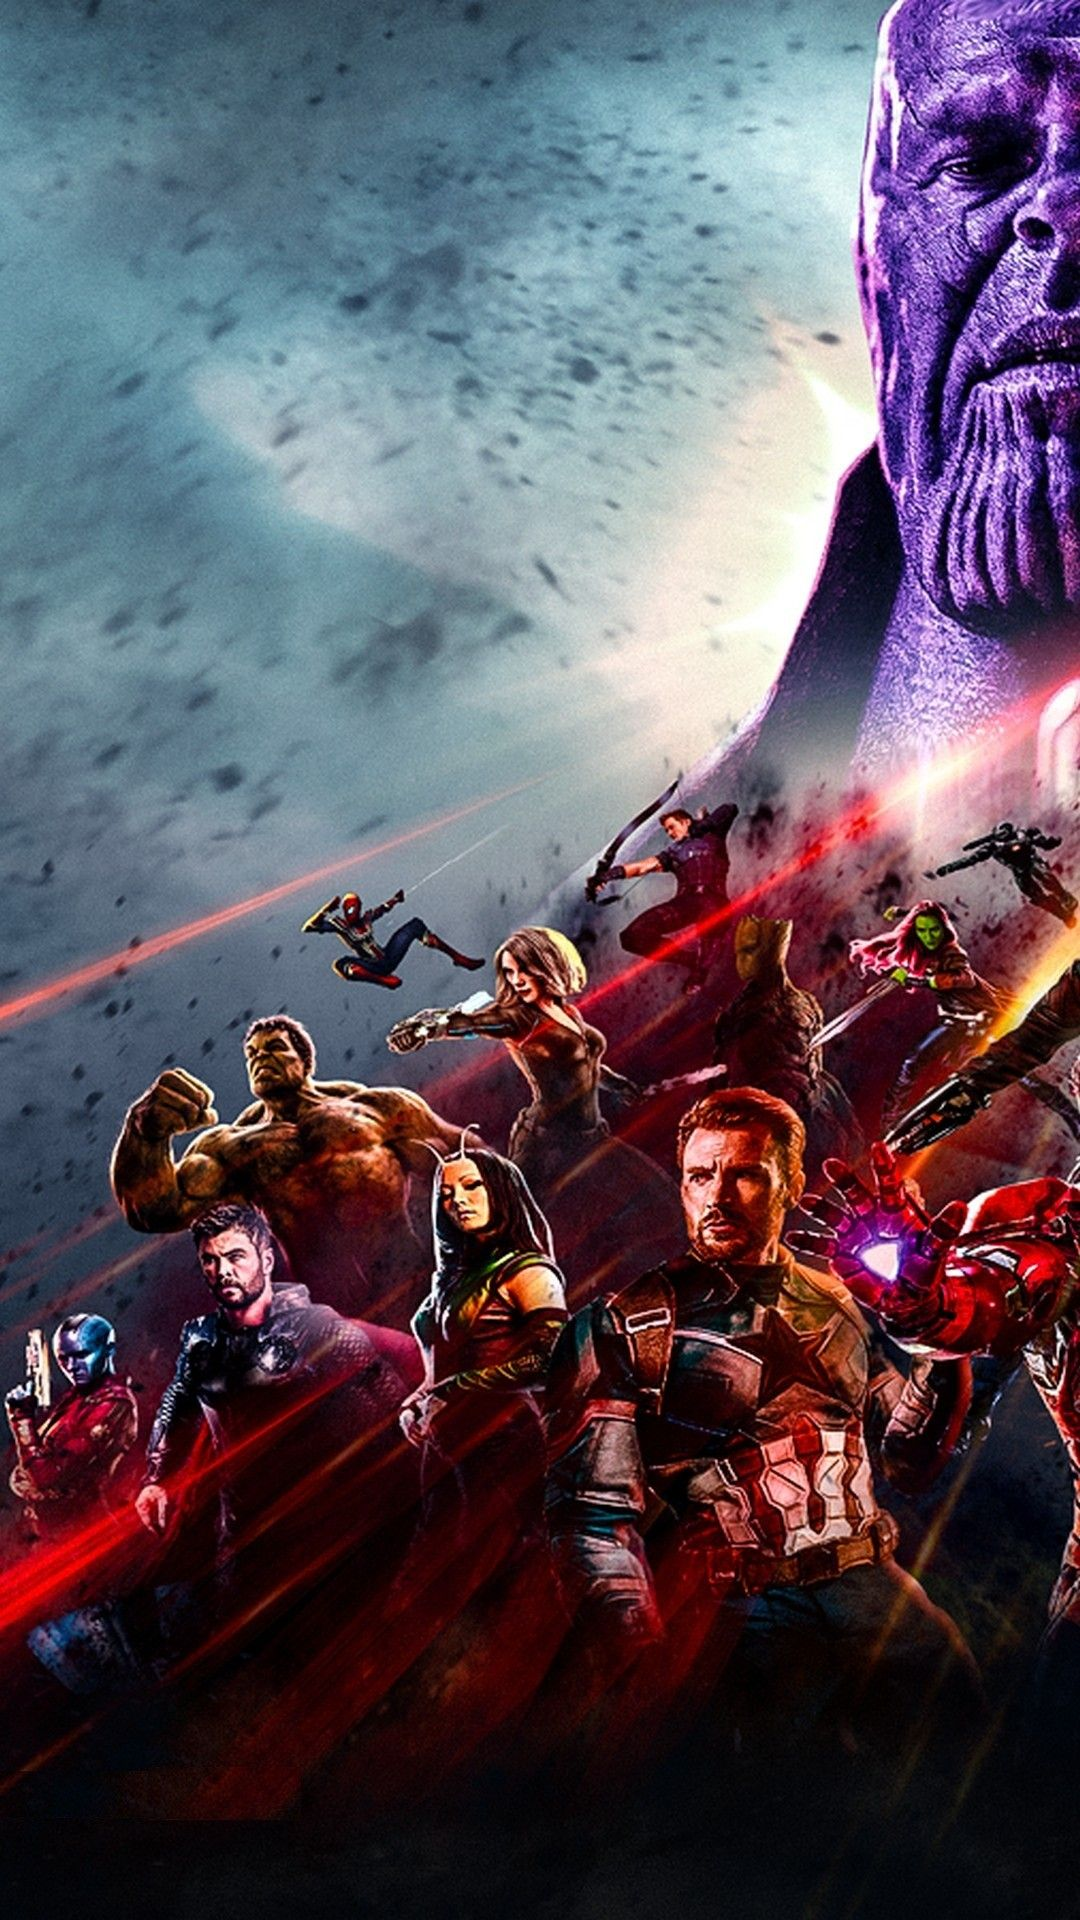 Avengers Infinity War Wallpaper iPhone | iPhoneWallpapers | Marvel, Avengers, Marvel heroes